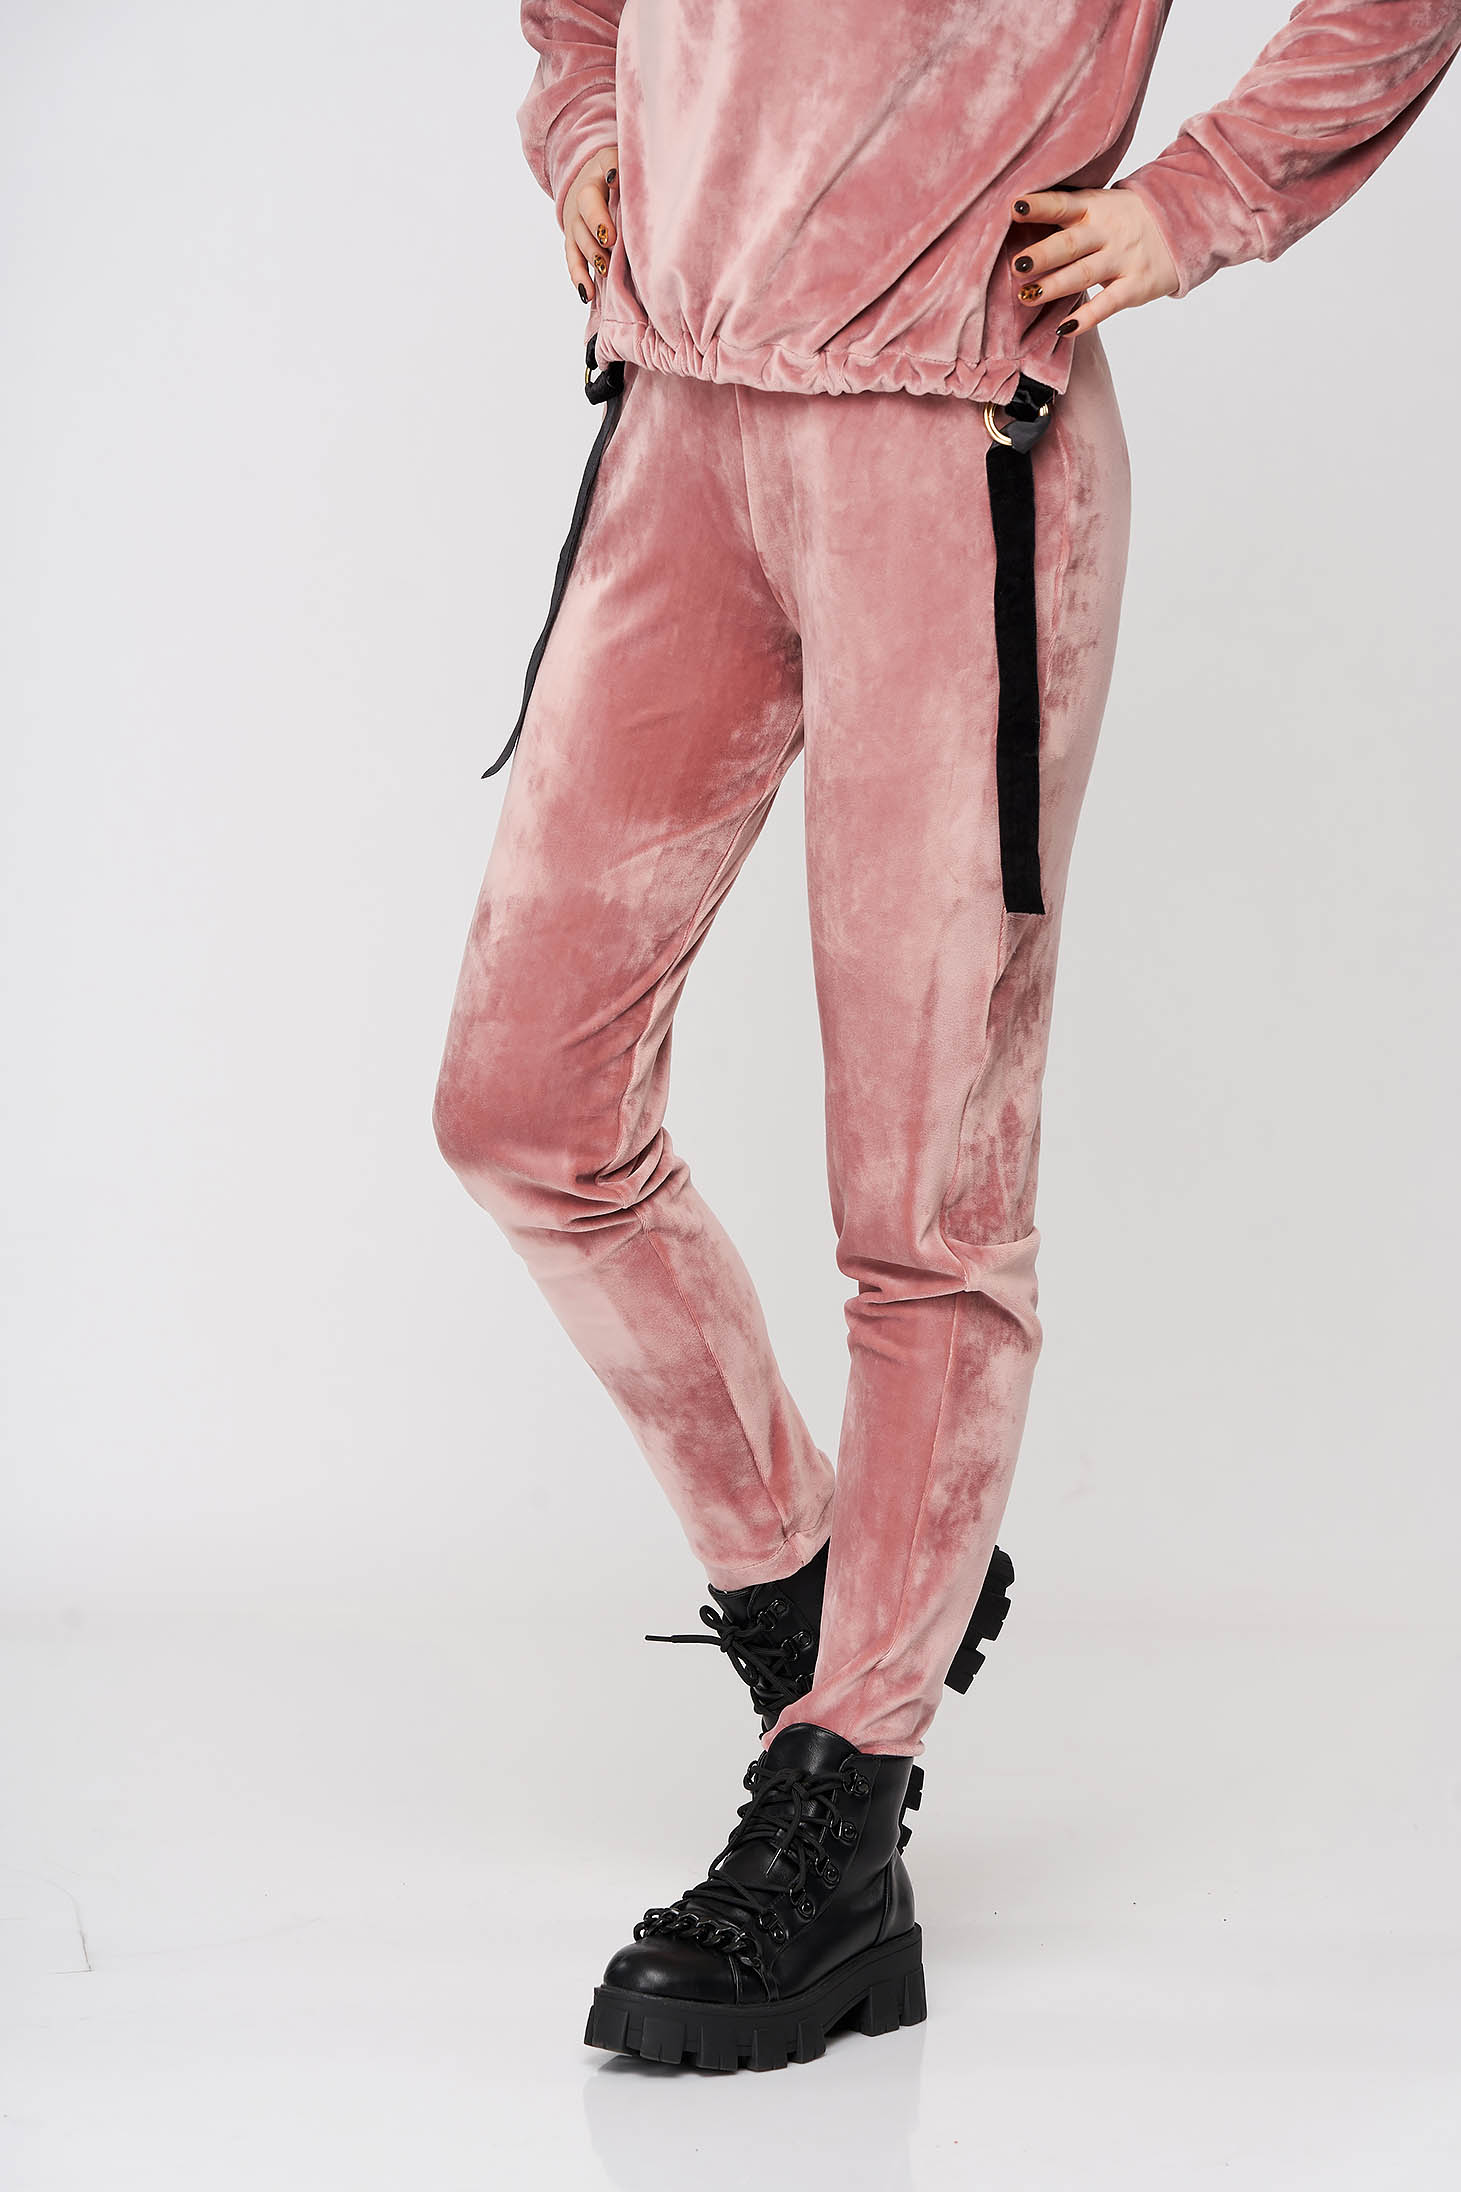 Trousers velvet lightpink StarShinerS casual conical high waisted with elastic waist